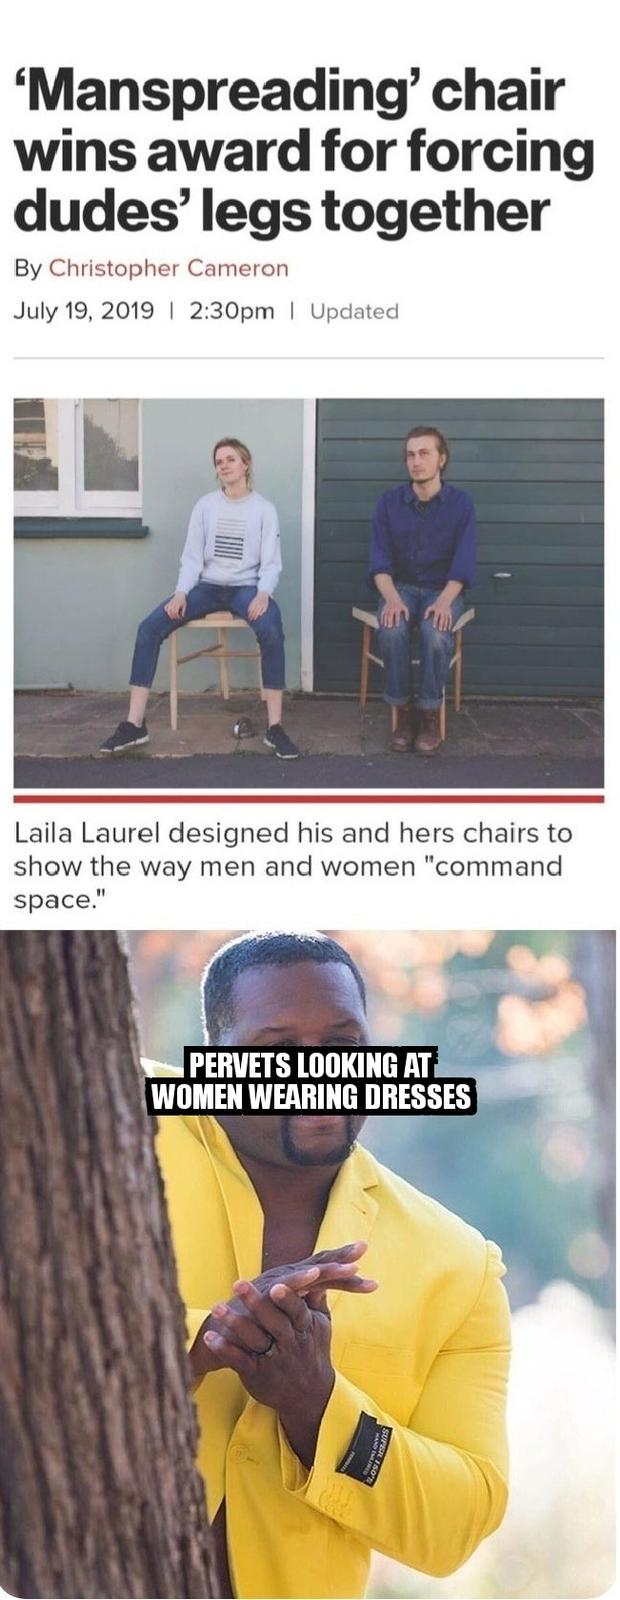 "'Manspreading' chair wins award for forcing dudes' legs together By Christopher Cameron July 19, 2019 2:30pm Updated Laila Laurel designed his and hers chairs to show the way men and women ""command space."" PERVETS LOOKING AT WOMEN WEARING DRESSES"